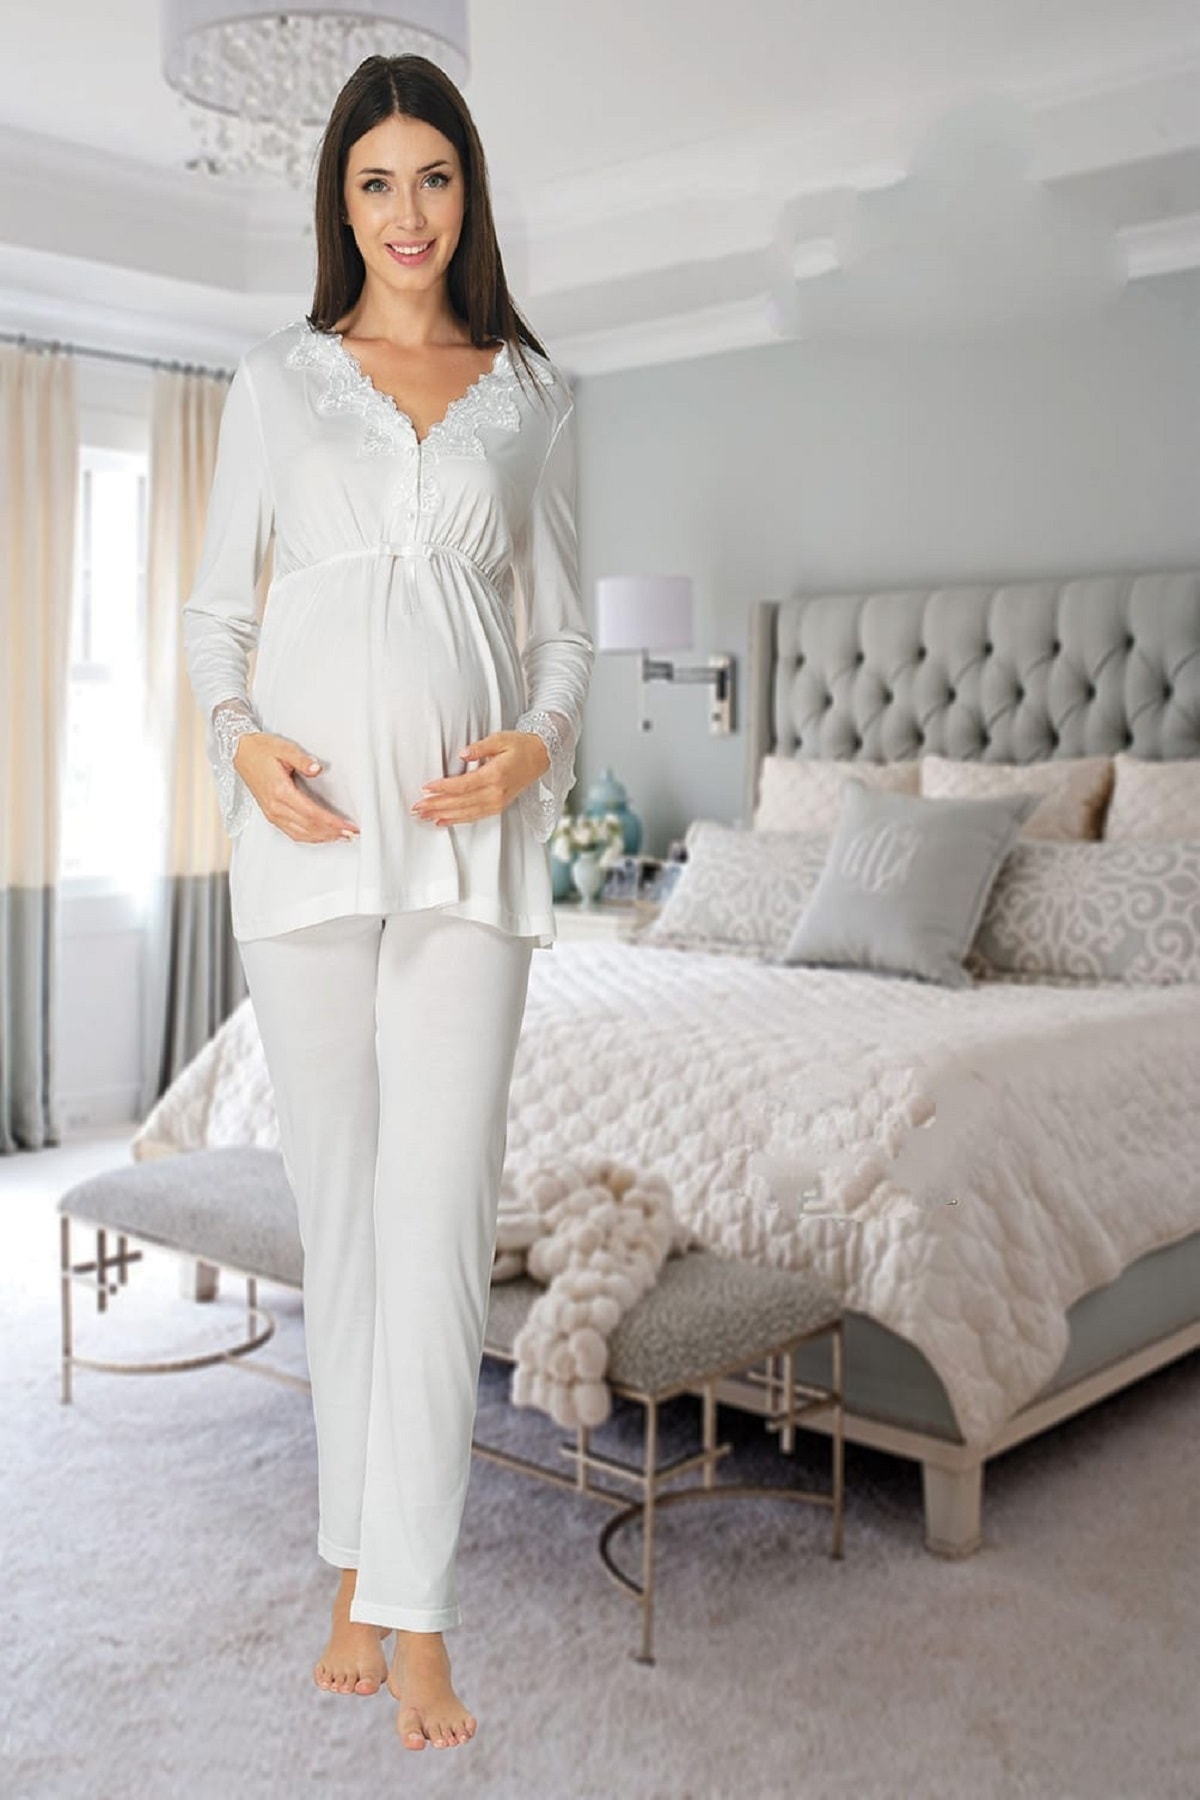 Women's White Long-Sleeve Pajamas Set Nightgown Dressing Gown Puerperal Maternity 4'lü Set enlarge